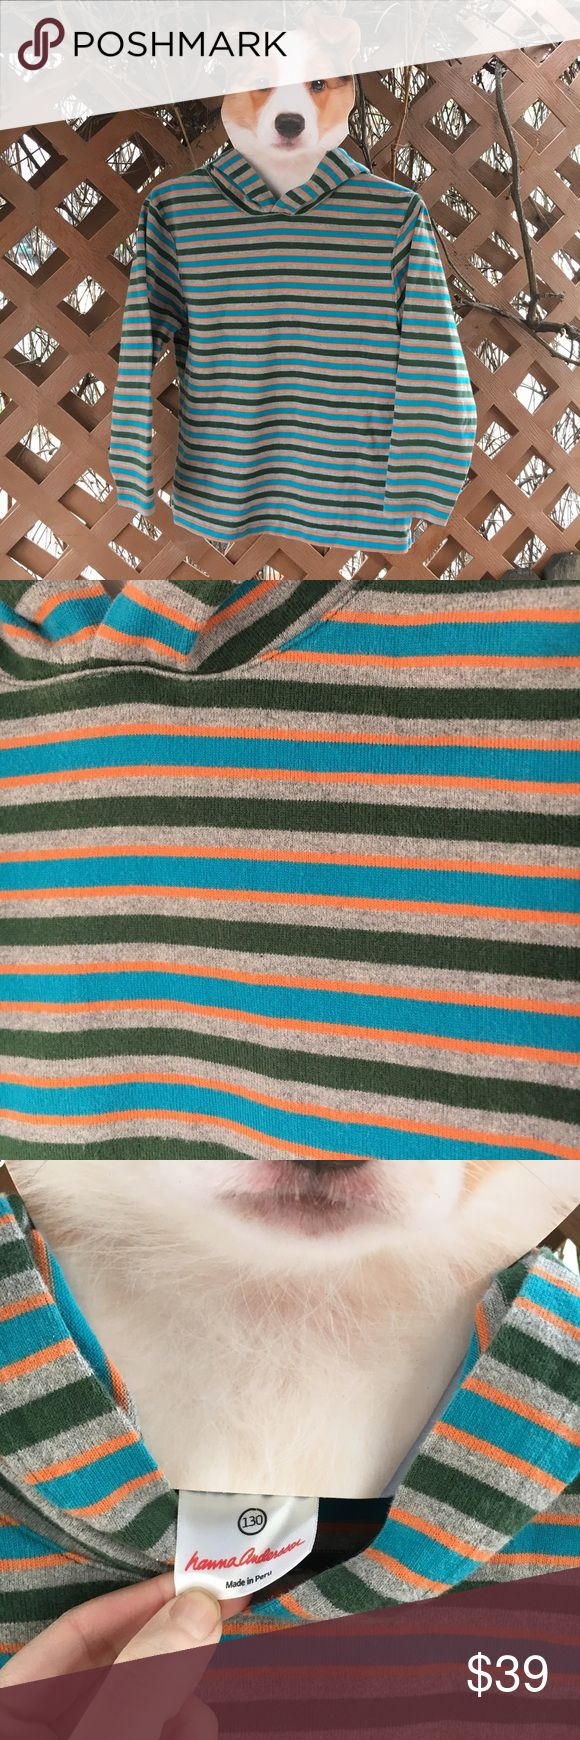 {hanna andersson} Boys Striped Hoodie Tee 8/10 EUC! Only worn and washed twice. Long sleeve hooded tee, but nice thick material. Hanna Andersson quality, comfort and durability. Grey, green, blue and orange stripes. Warm, cozy and just cool. Size 130, according to official website size chart is a US 8/10. Hanna Andersson Shirts & Tops Sweatshirts & Hoodies